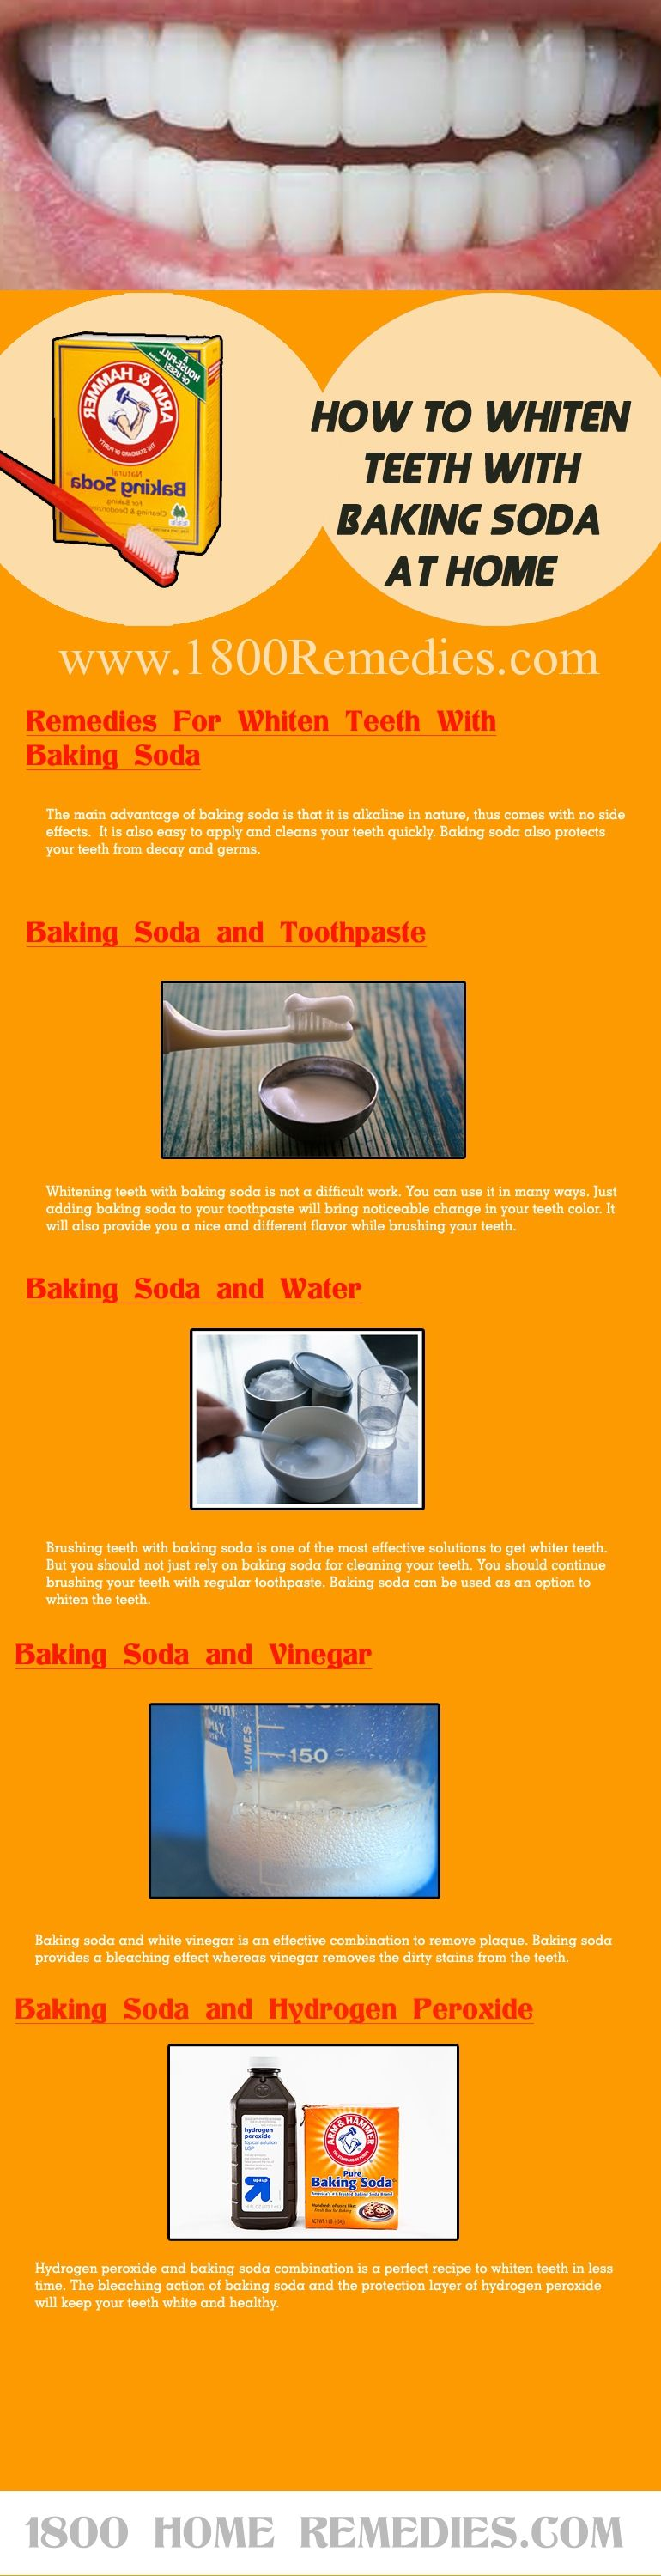 pin by becca on natural home remedies beauty diy tips hacks